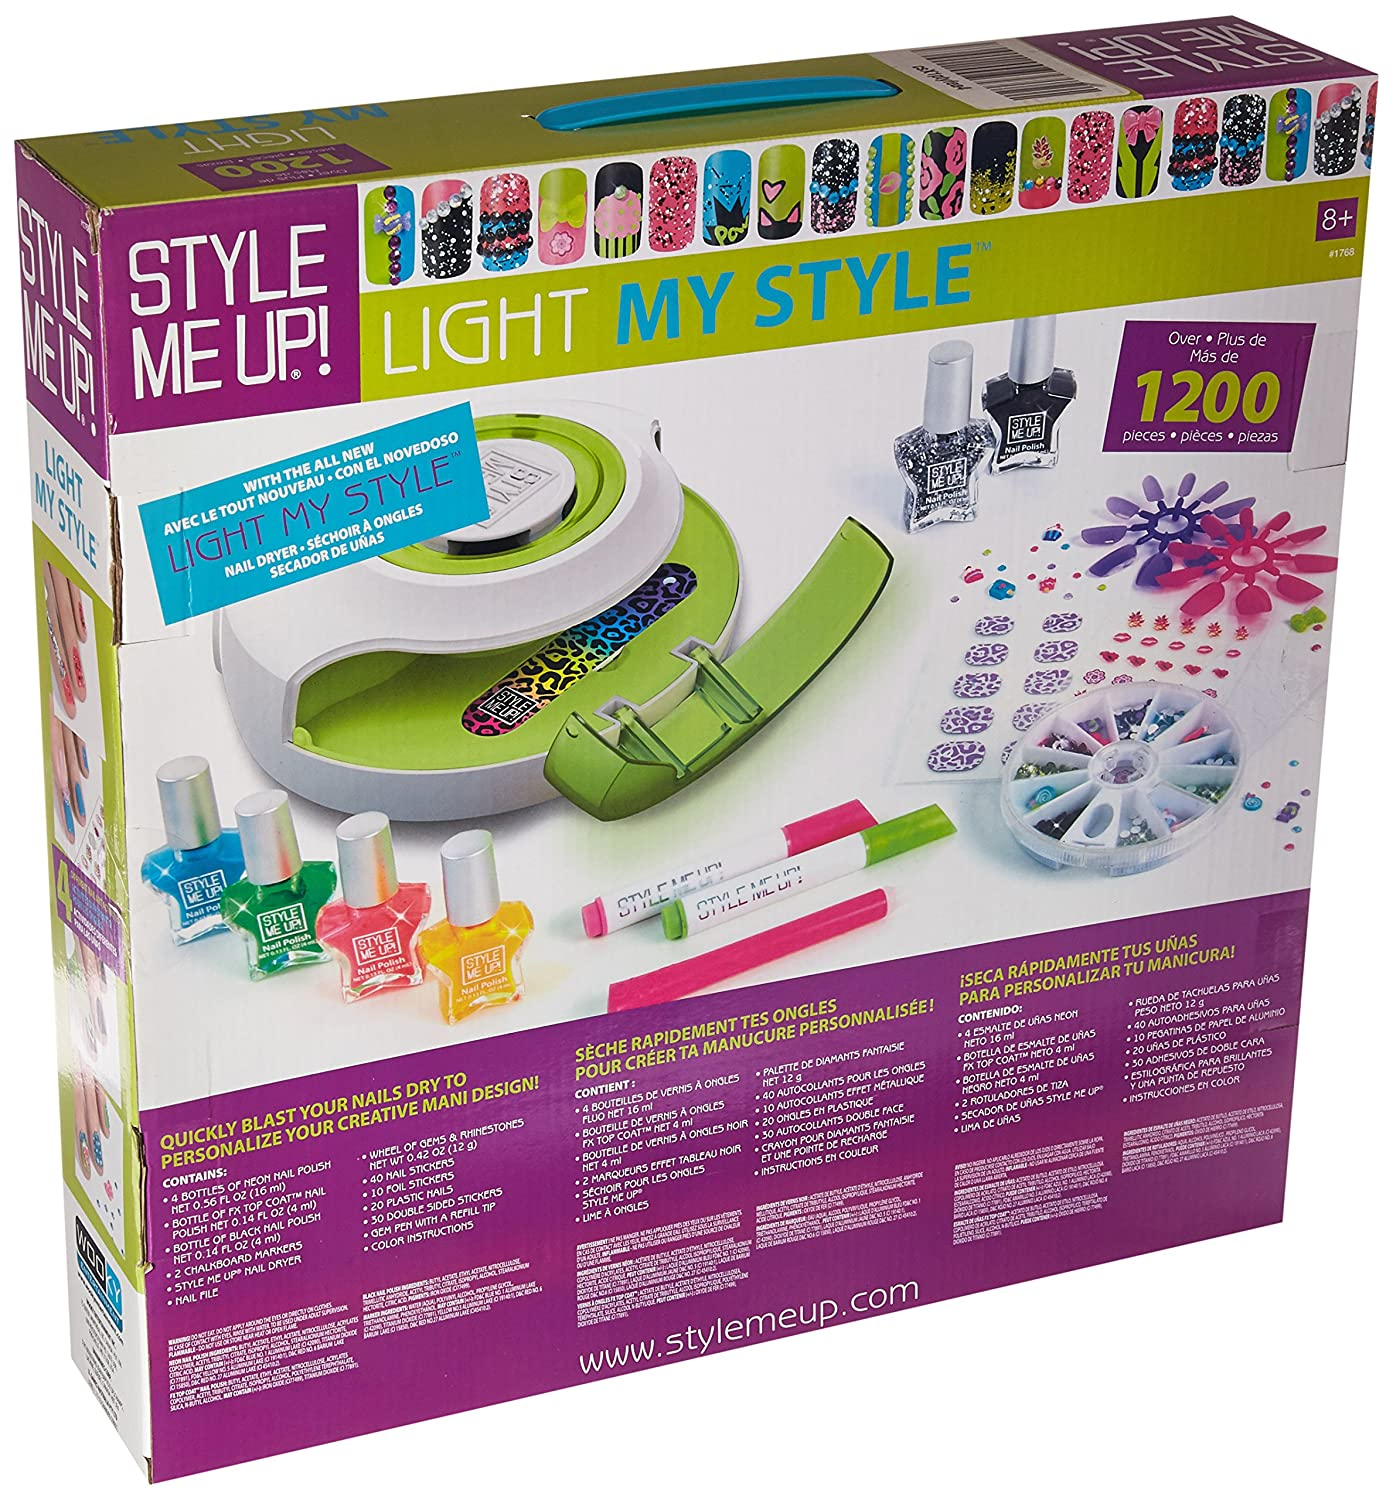 Amazon.com: Style Me Up - All in One Pack for Nail Art - Nail Polishes, Coats, Markers, Nail Dryer and Decorations - SMU-1768: Toys & Games